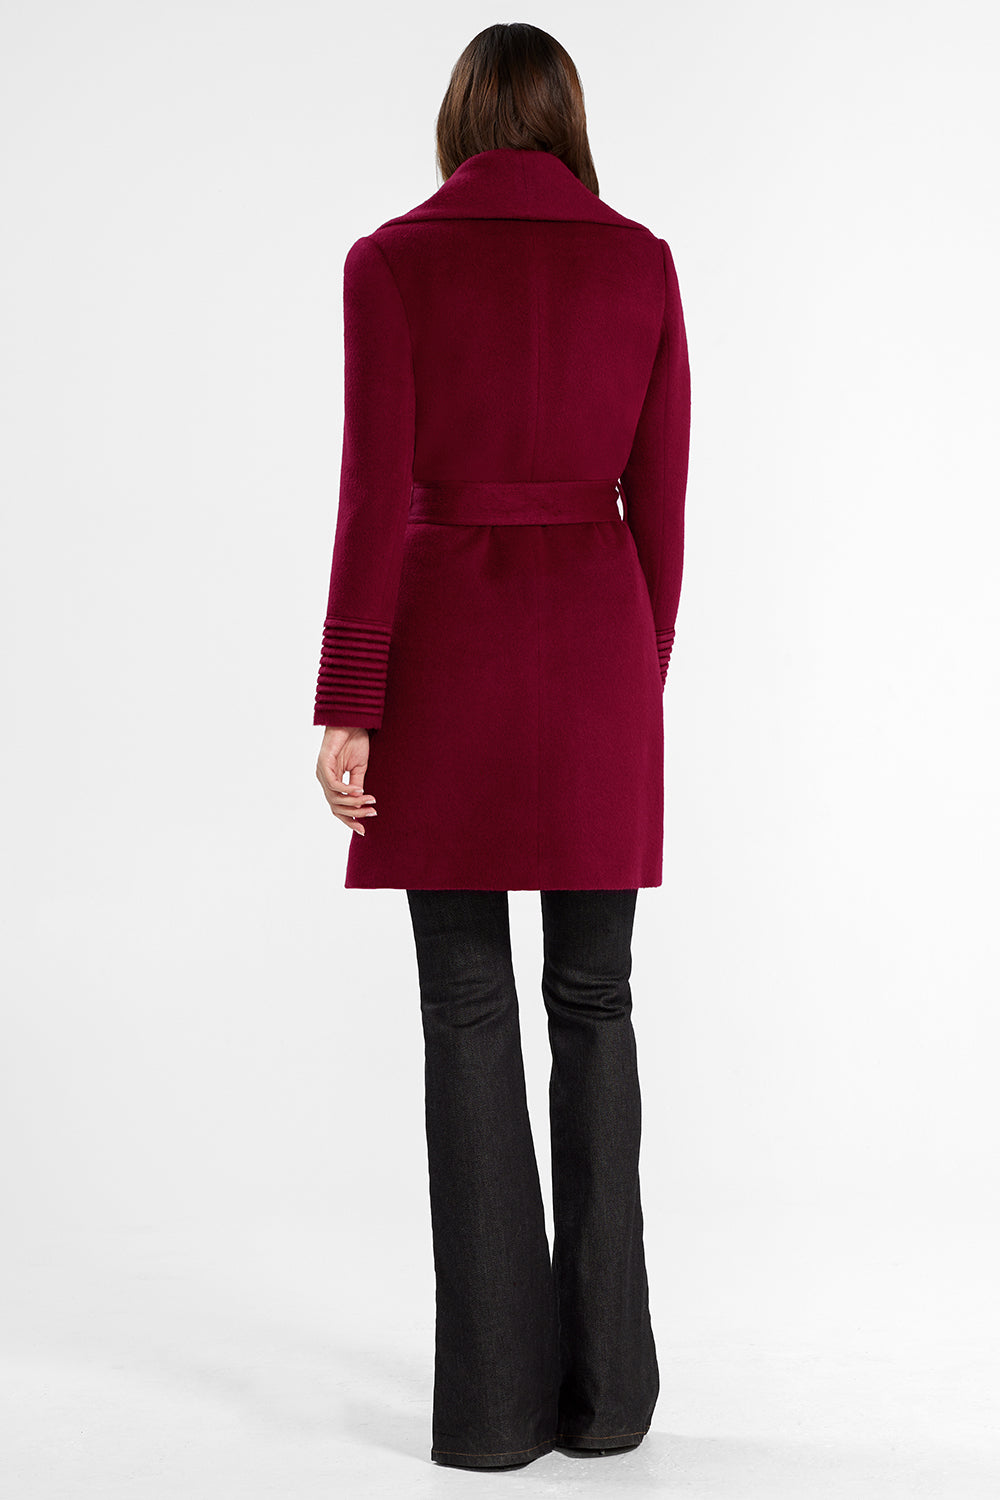 Sentaler Mid Length Shawl Collar Wrap Coat featured in Baby Alpaca and available in Garnet Red. Seen from back.